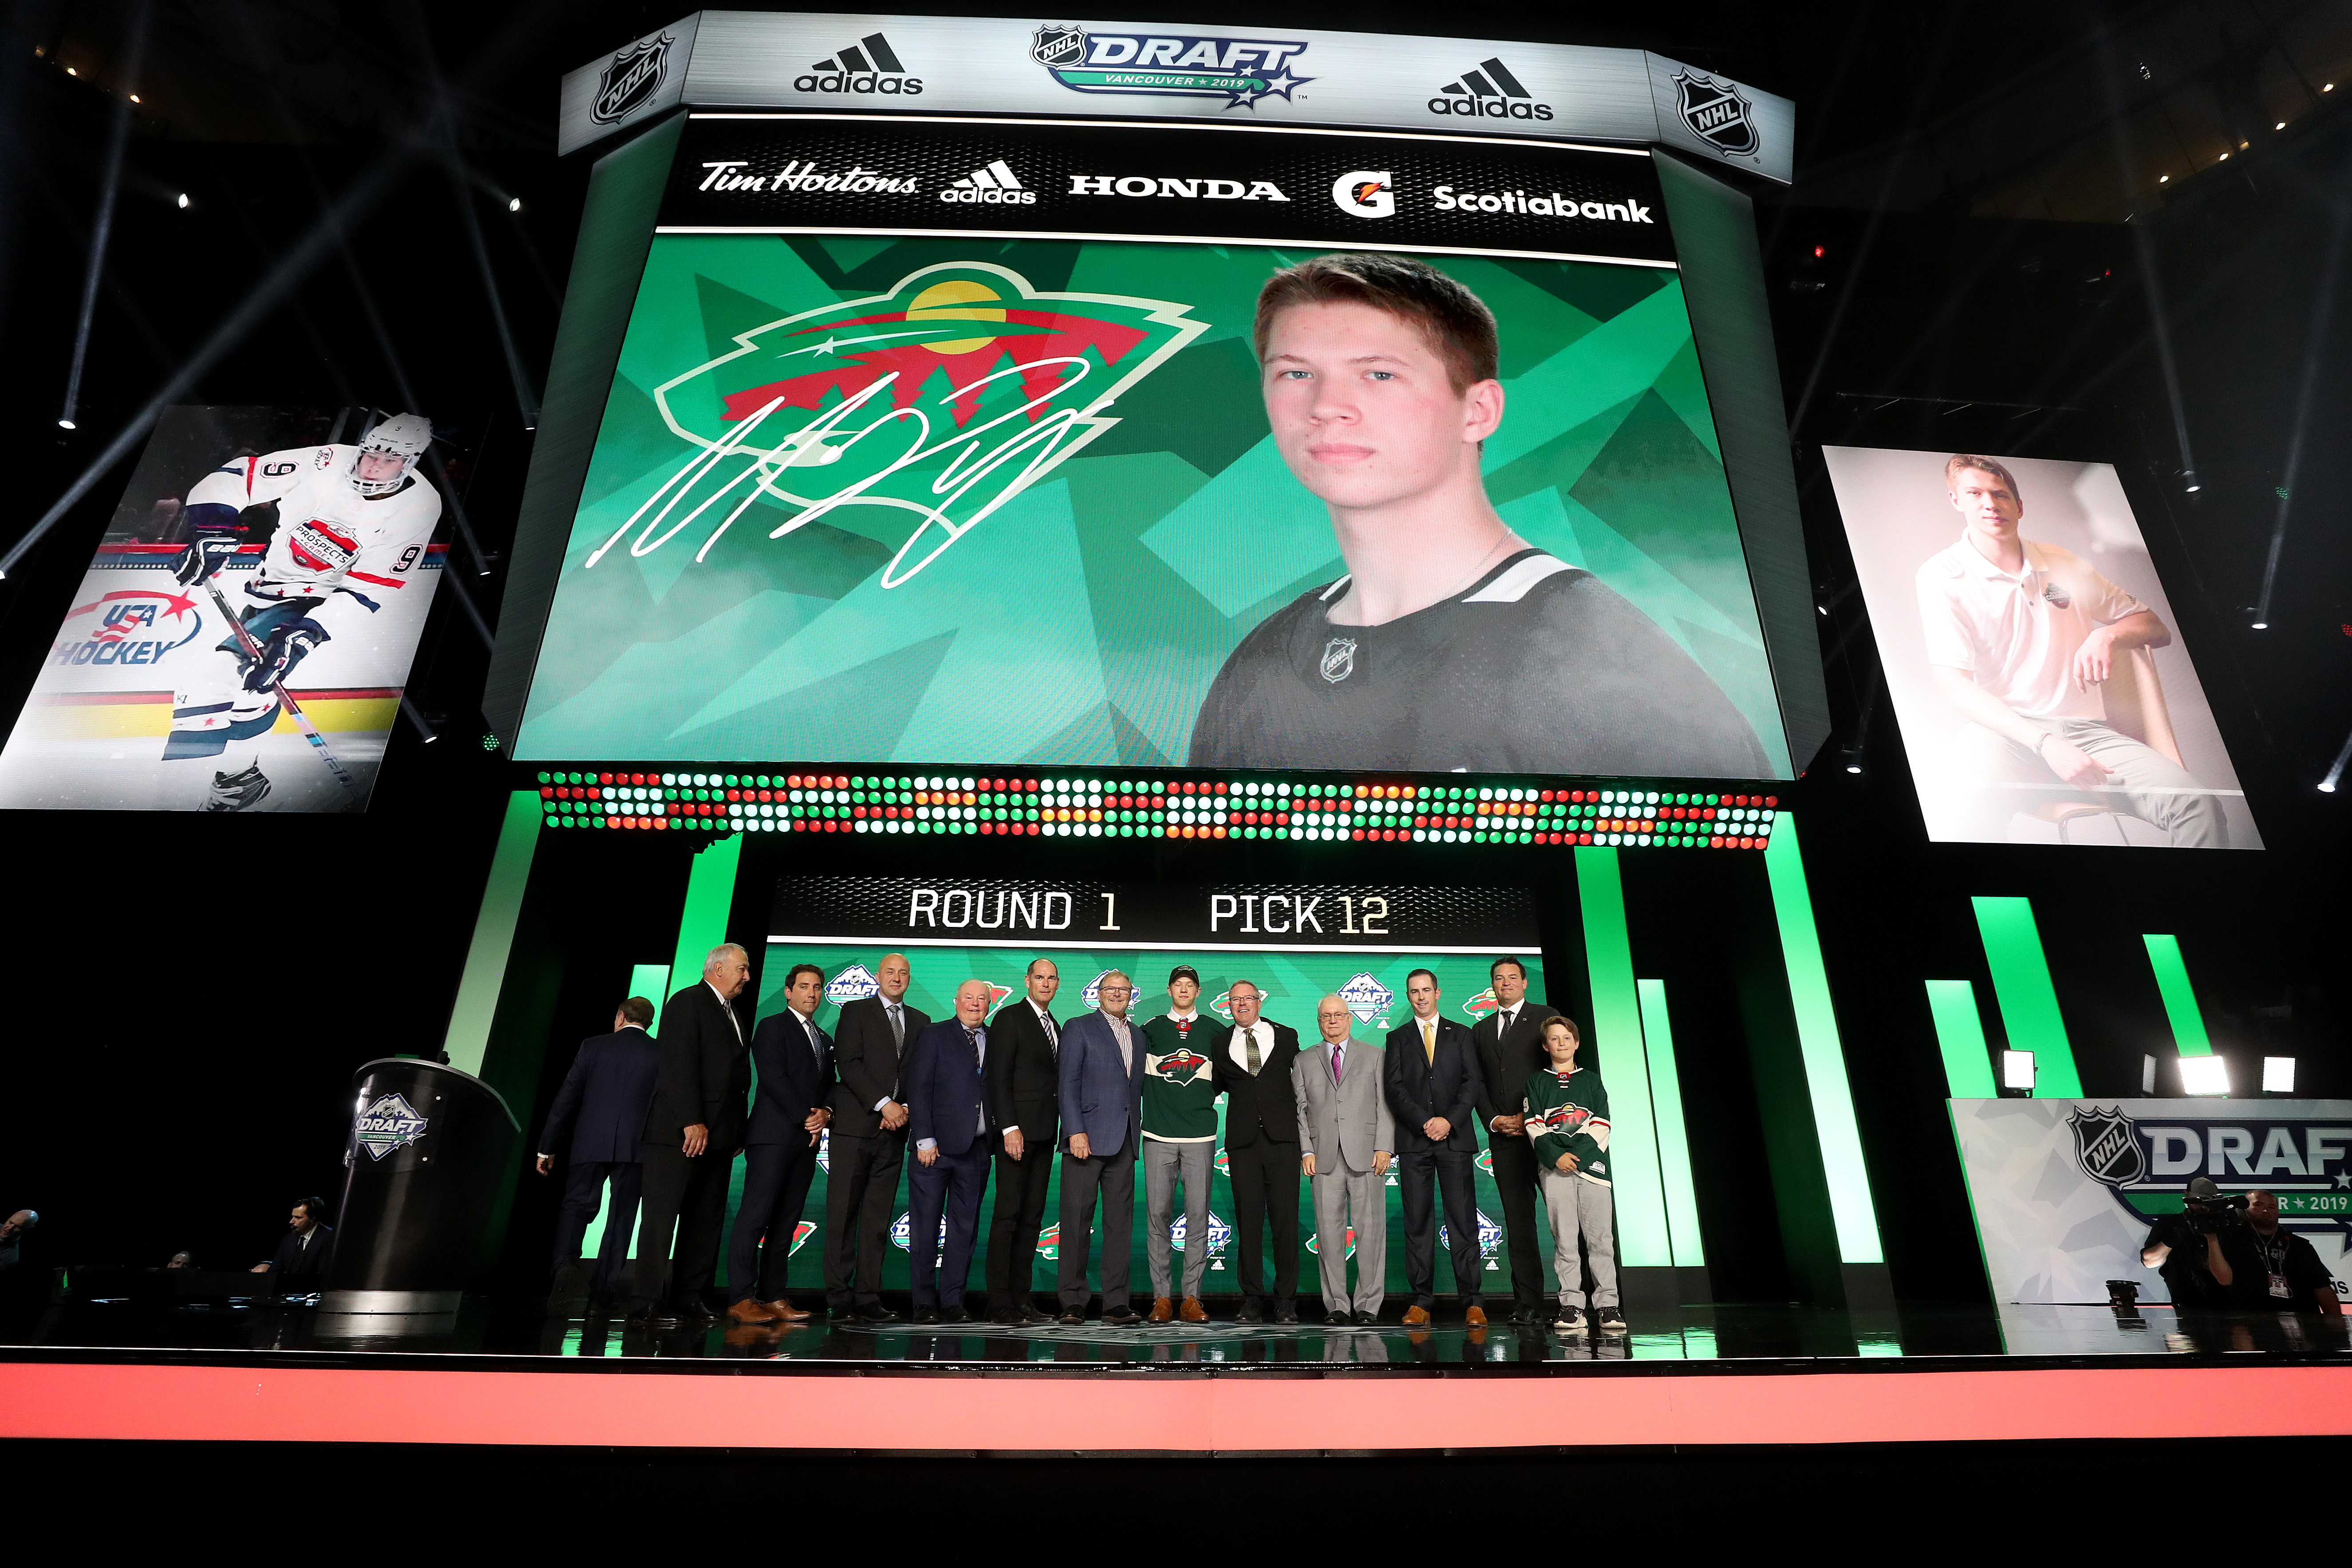 VANCOUVER, BRITISH COLUMBIA - JUNE 21: Matthew Boldy reacts after being selected twelfth overall by the Minnesota Wild during the first round of the 2019 NHL Draft at Rogers Arena on June 21, 2019 in Vancouver, Canada.